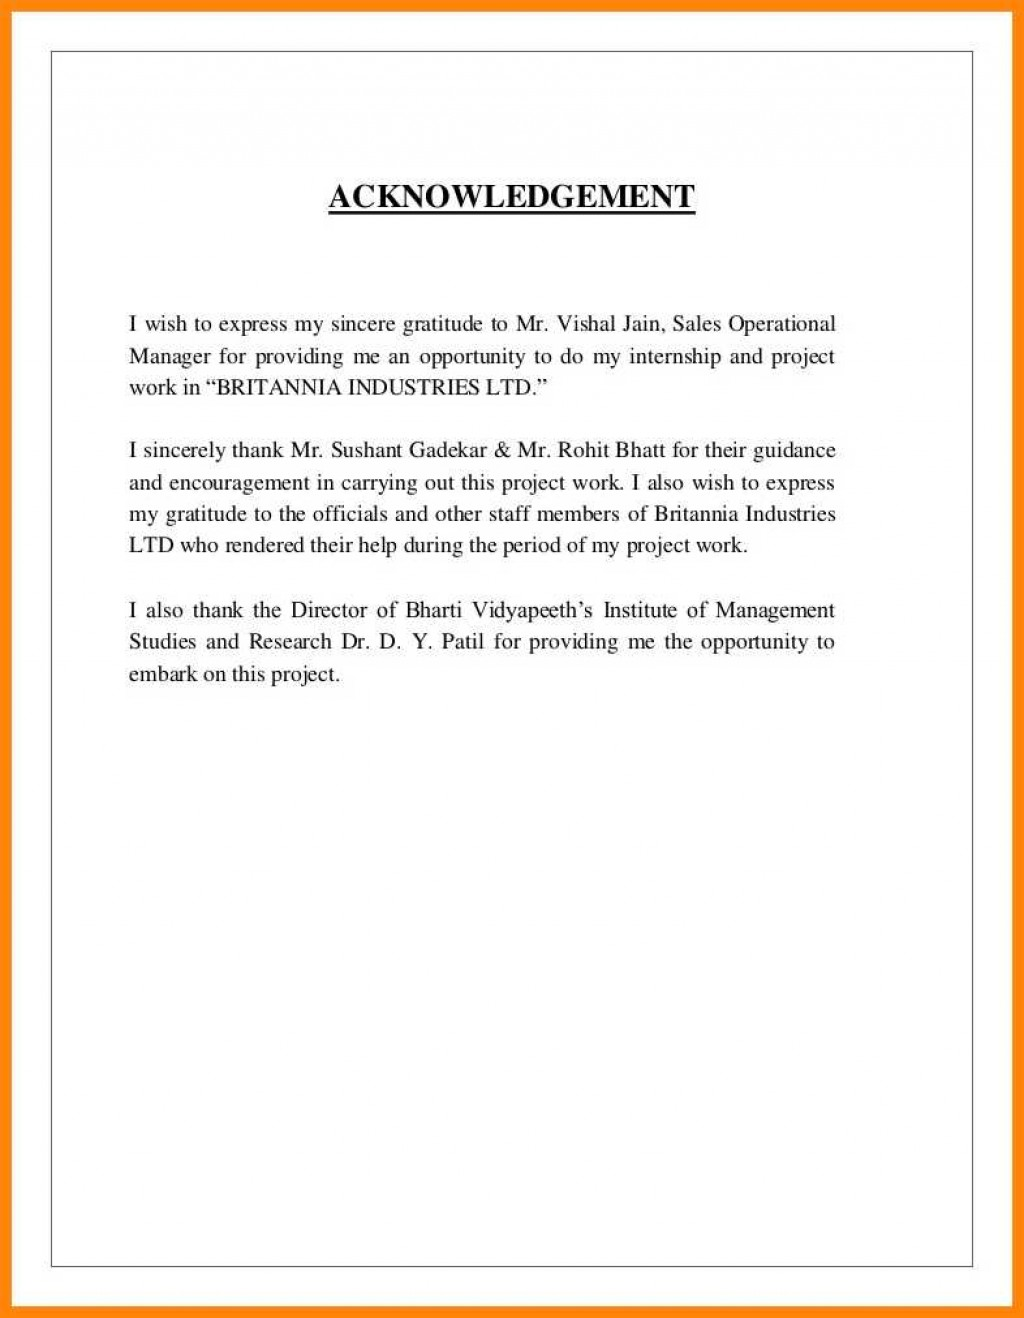 007 Research Paper Acknowledgement For Examples Sample Of 13 Striking Large